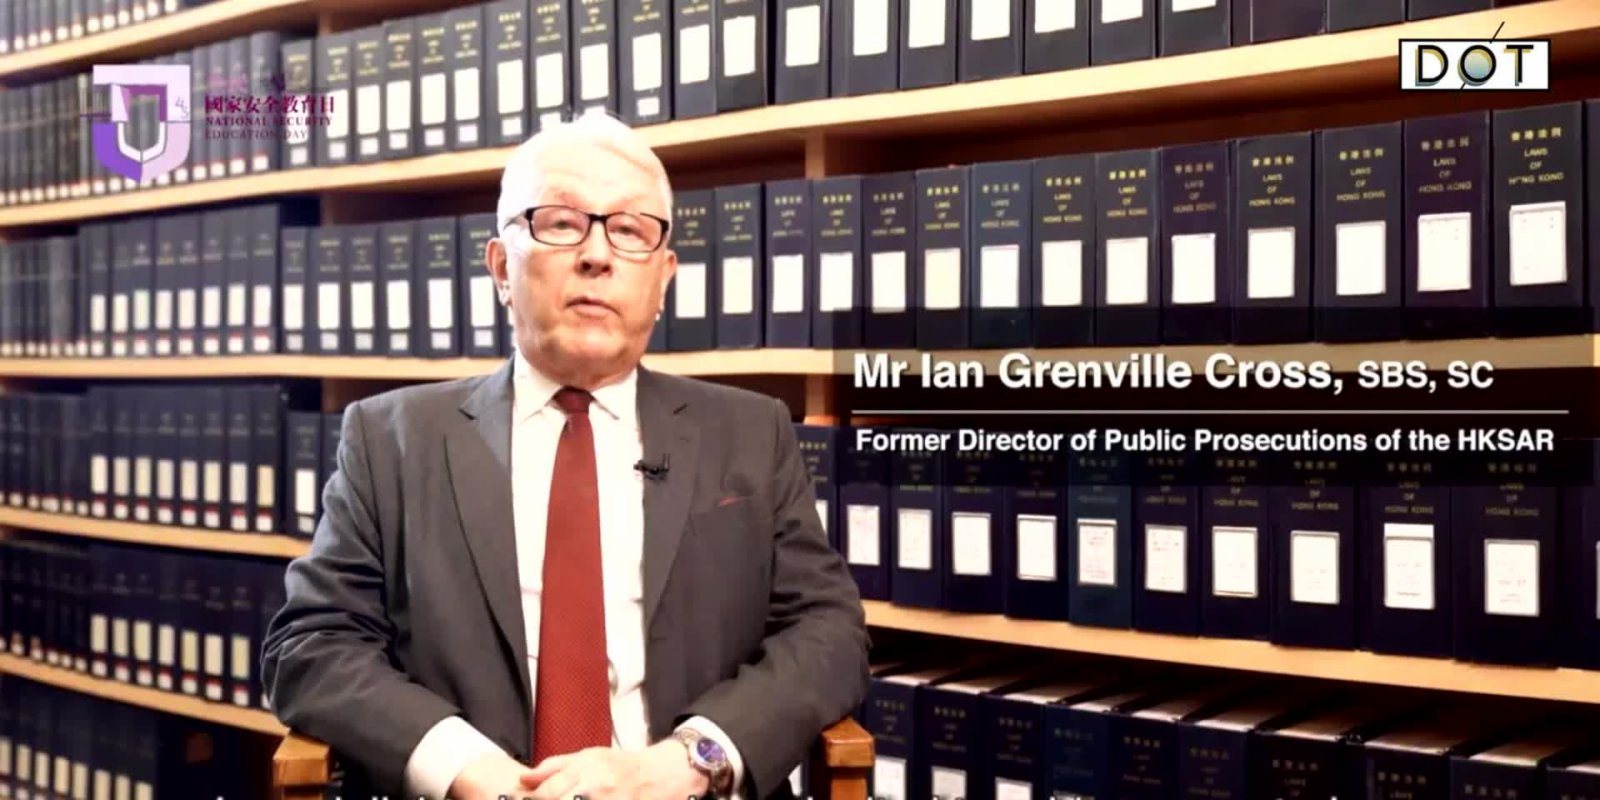 Watch This | No country can allow public positions occupied by people disregarding national imperatives: Grenville Cross